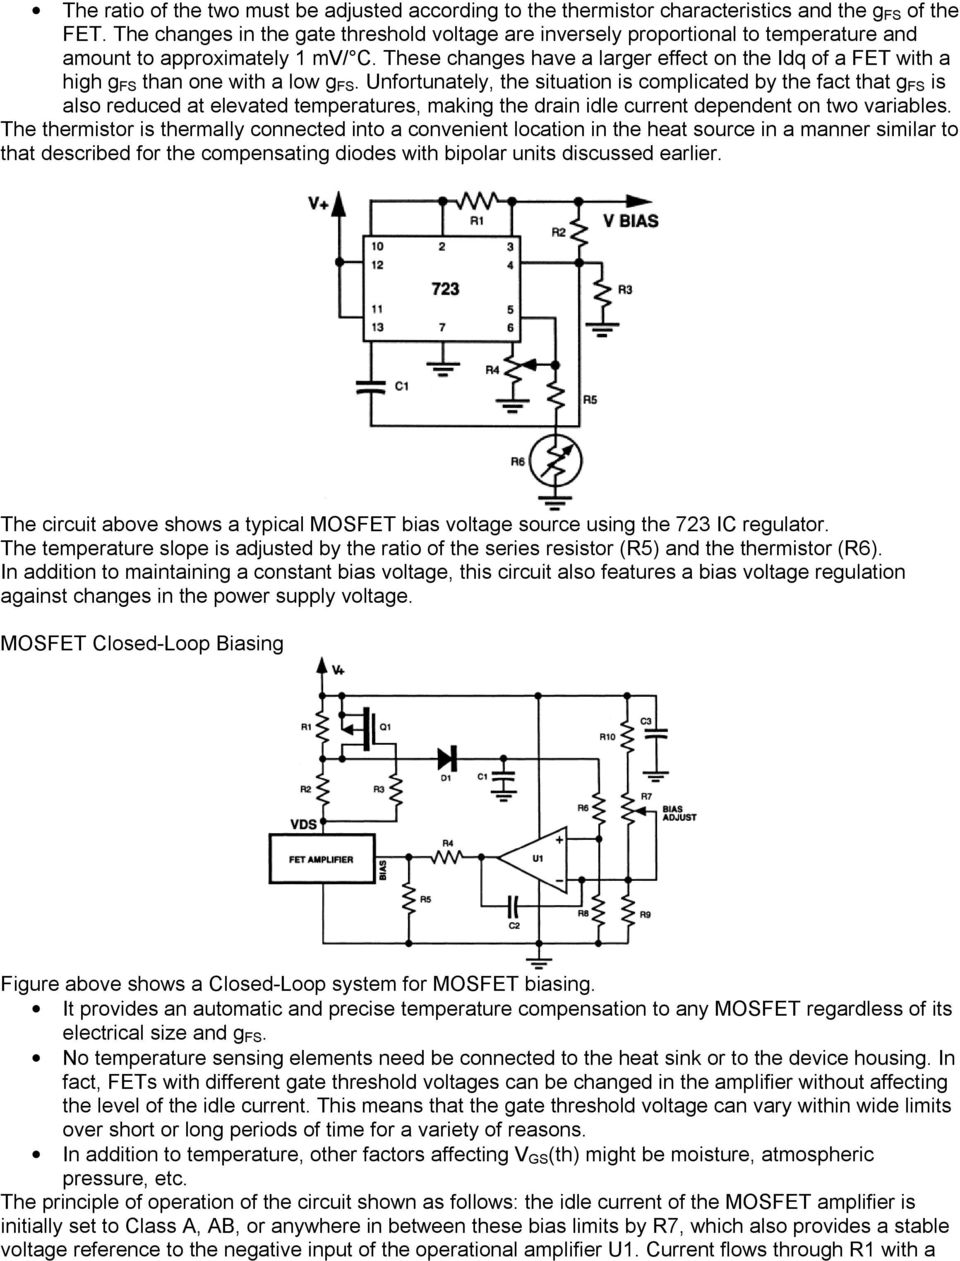 Bias Circuits For Rf Devices Pdf Reverse Oscillator Circuit These Changes Have A Larger Effect On The Idq Of Fet With High G